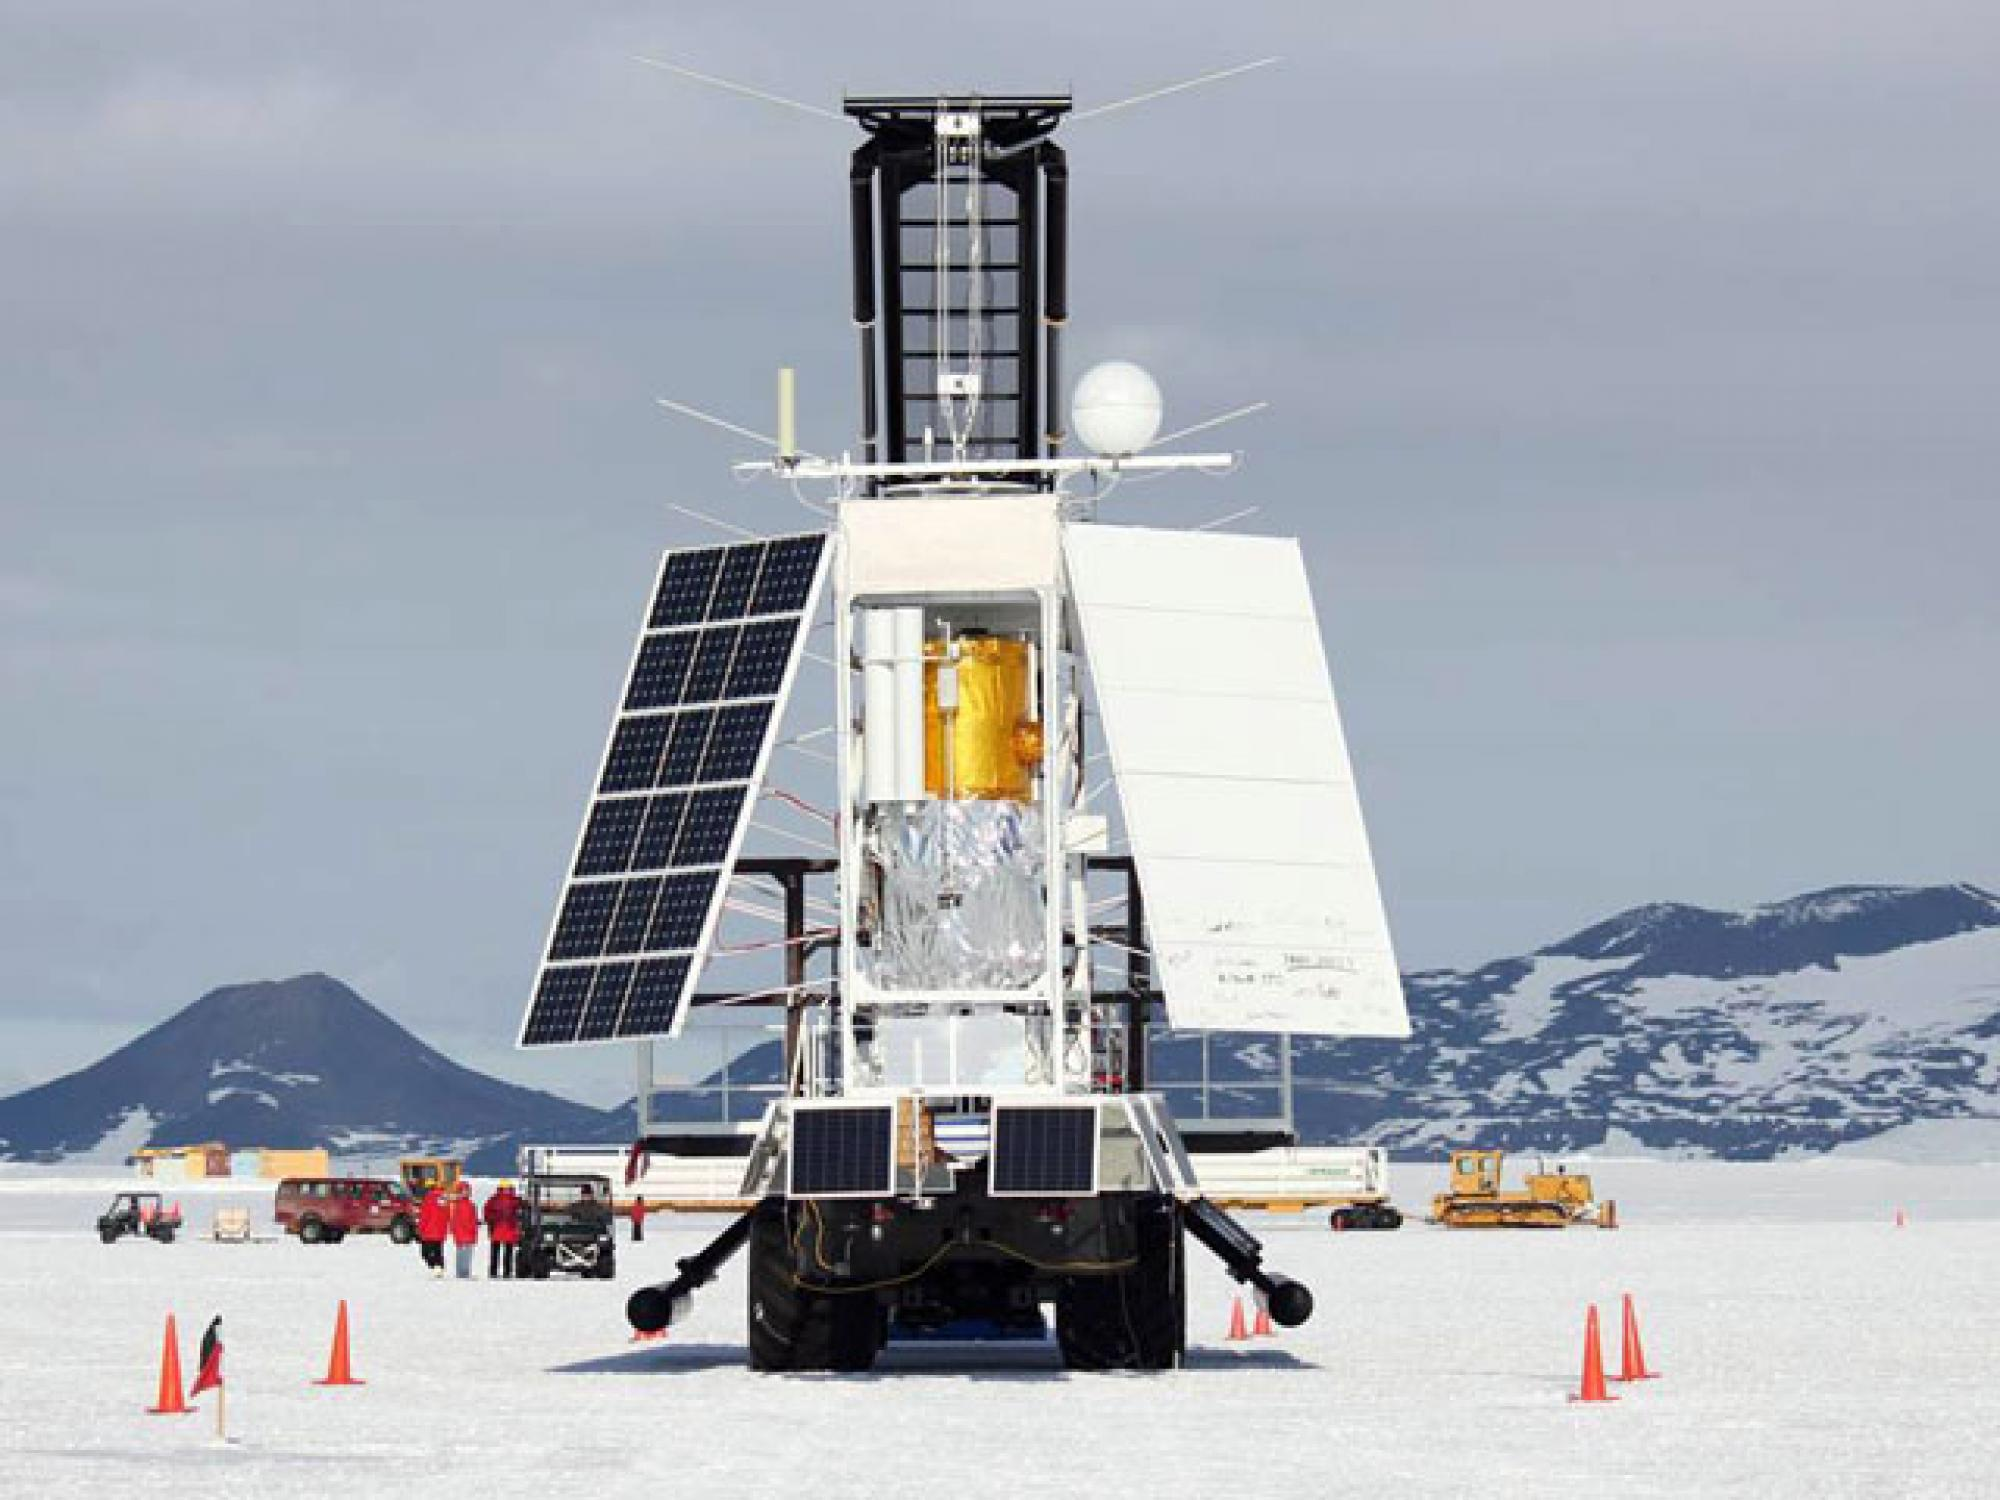 STO's gondola carrying the telescope and other scientific instruments